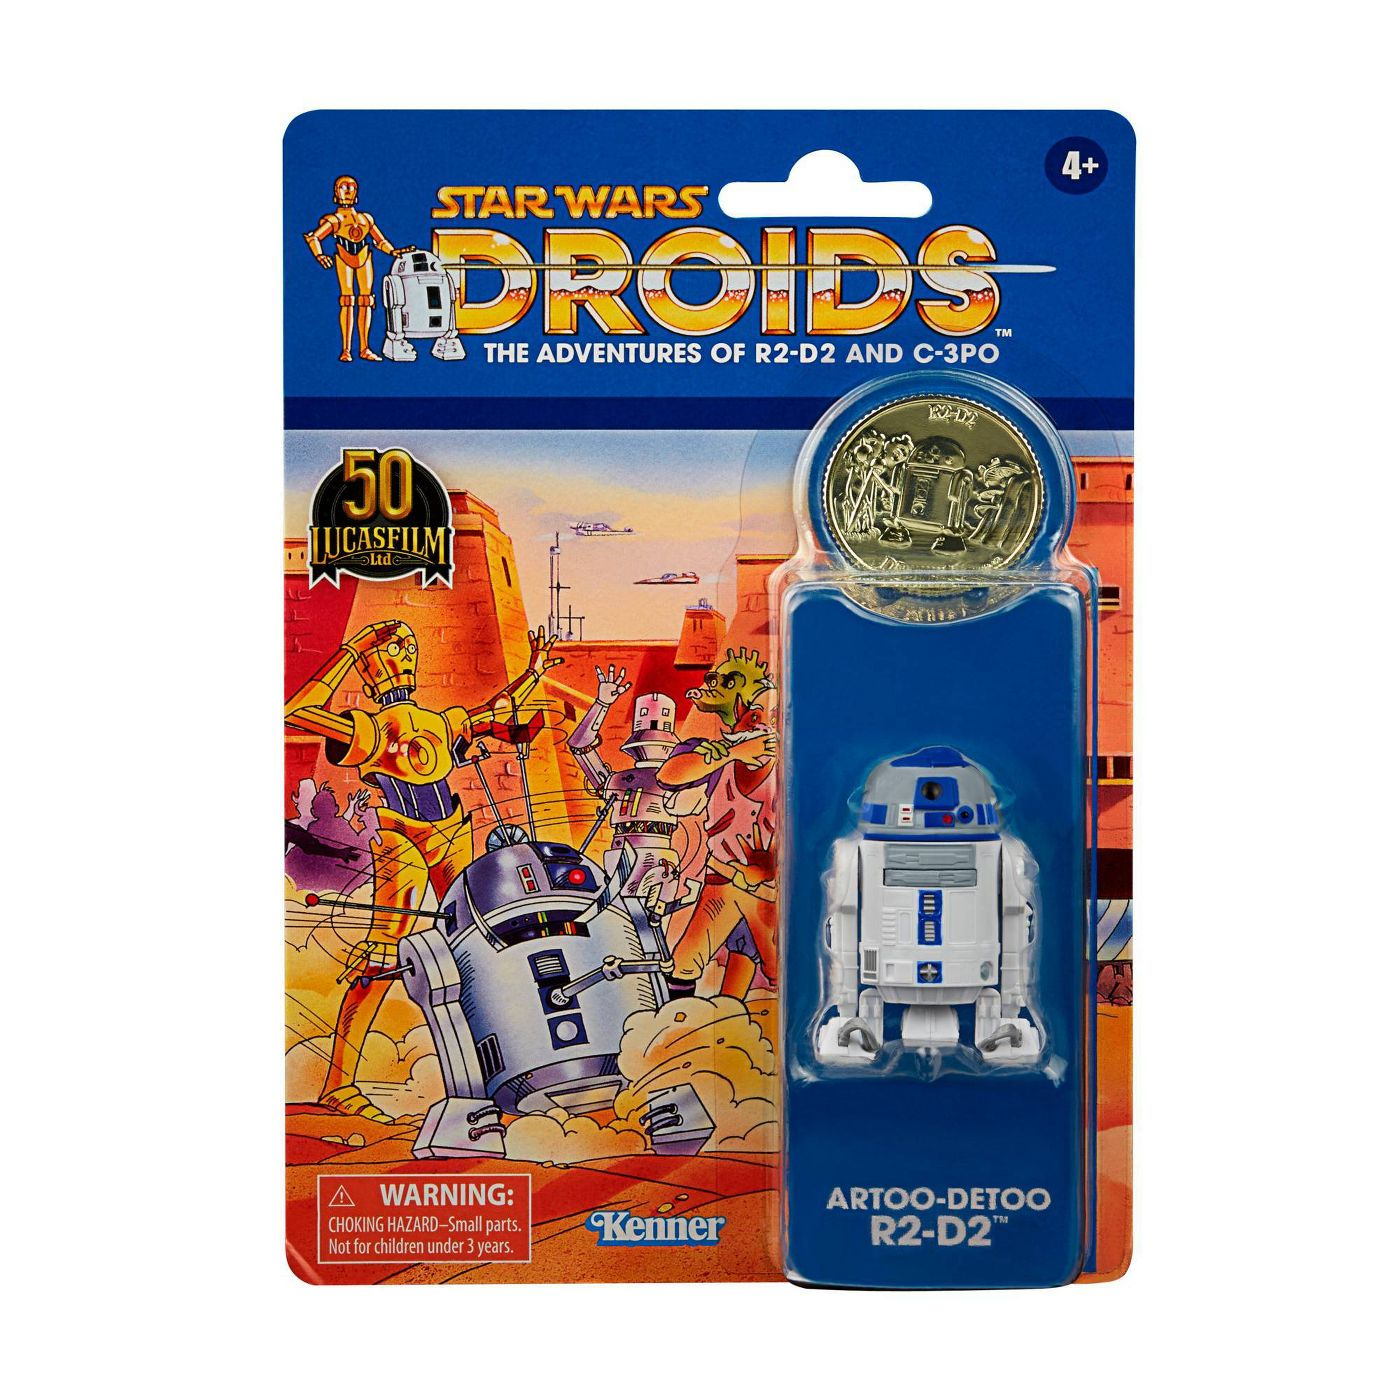 Star Wars The Vintage Collection DROIDS The Adventures R2-D2 3 3/4-Inch Action Figure画像